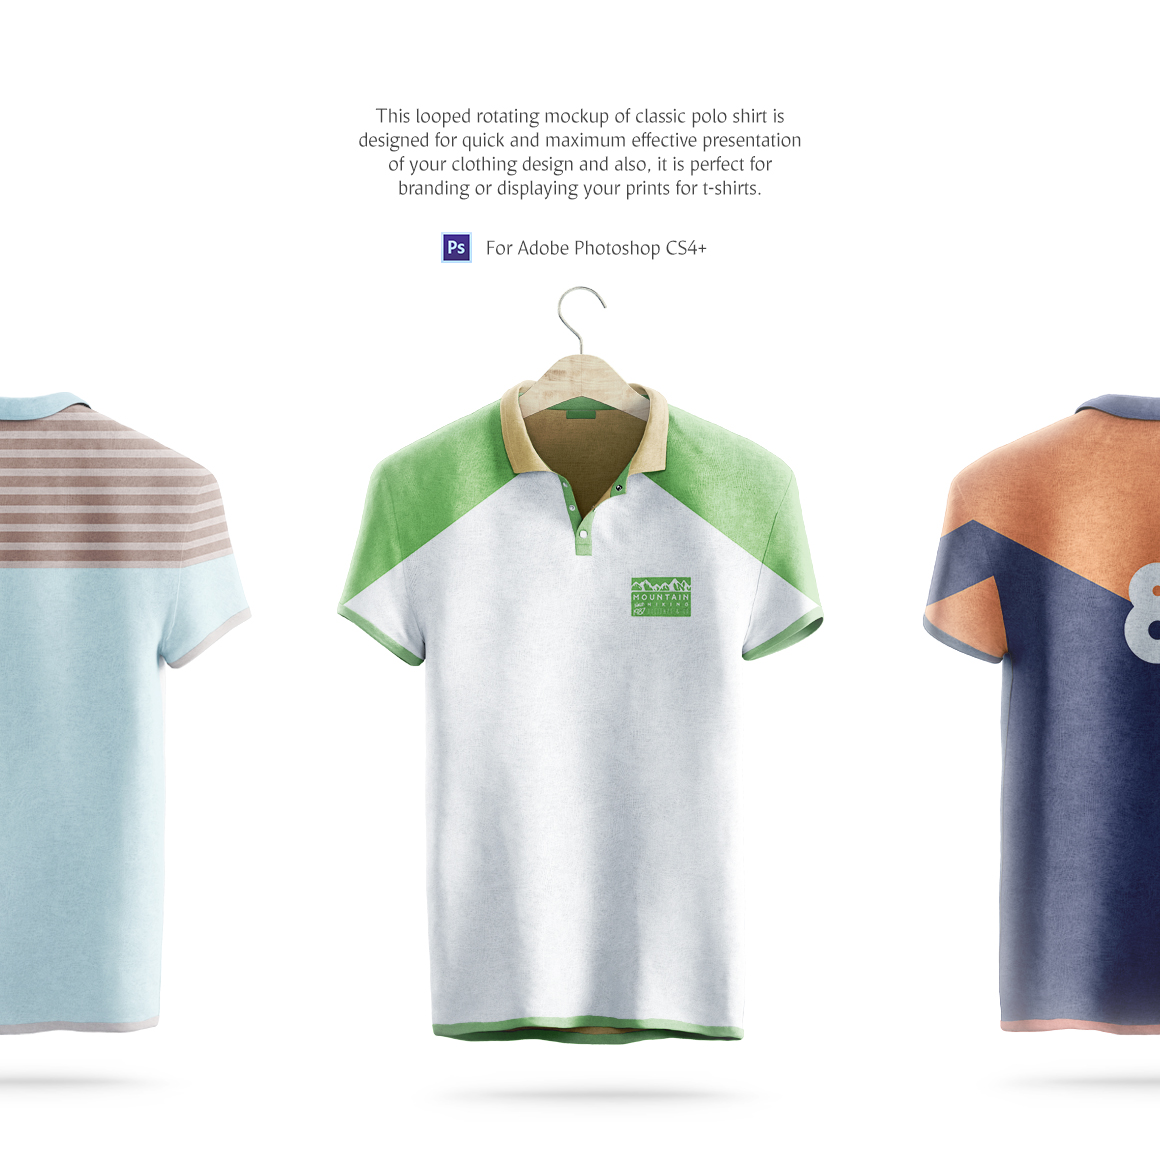 Polo Shirt - Animated Product Mockups